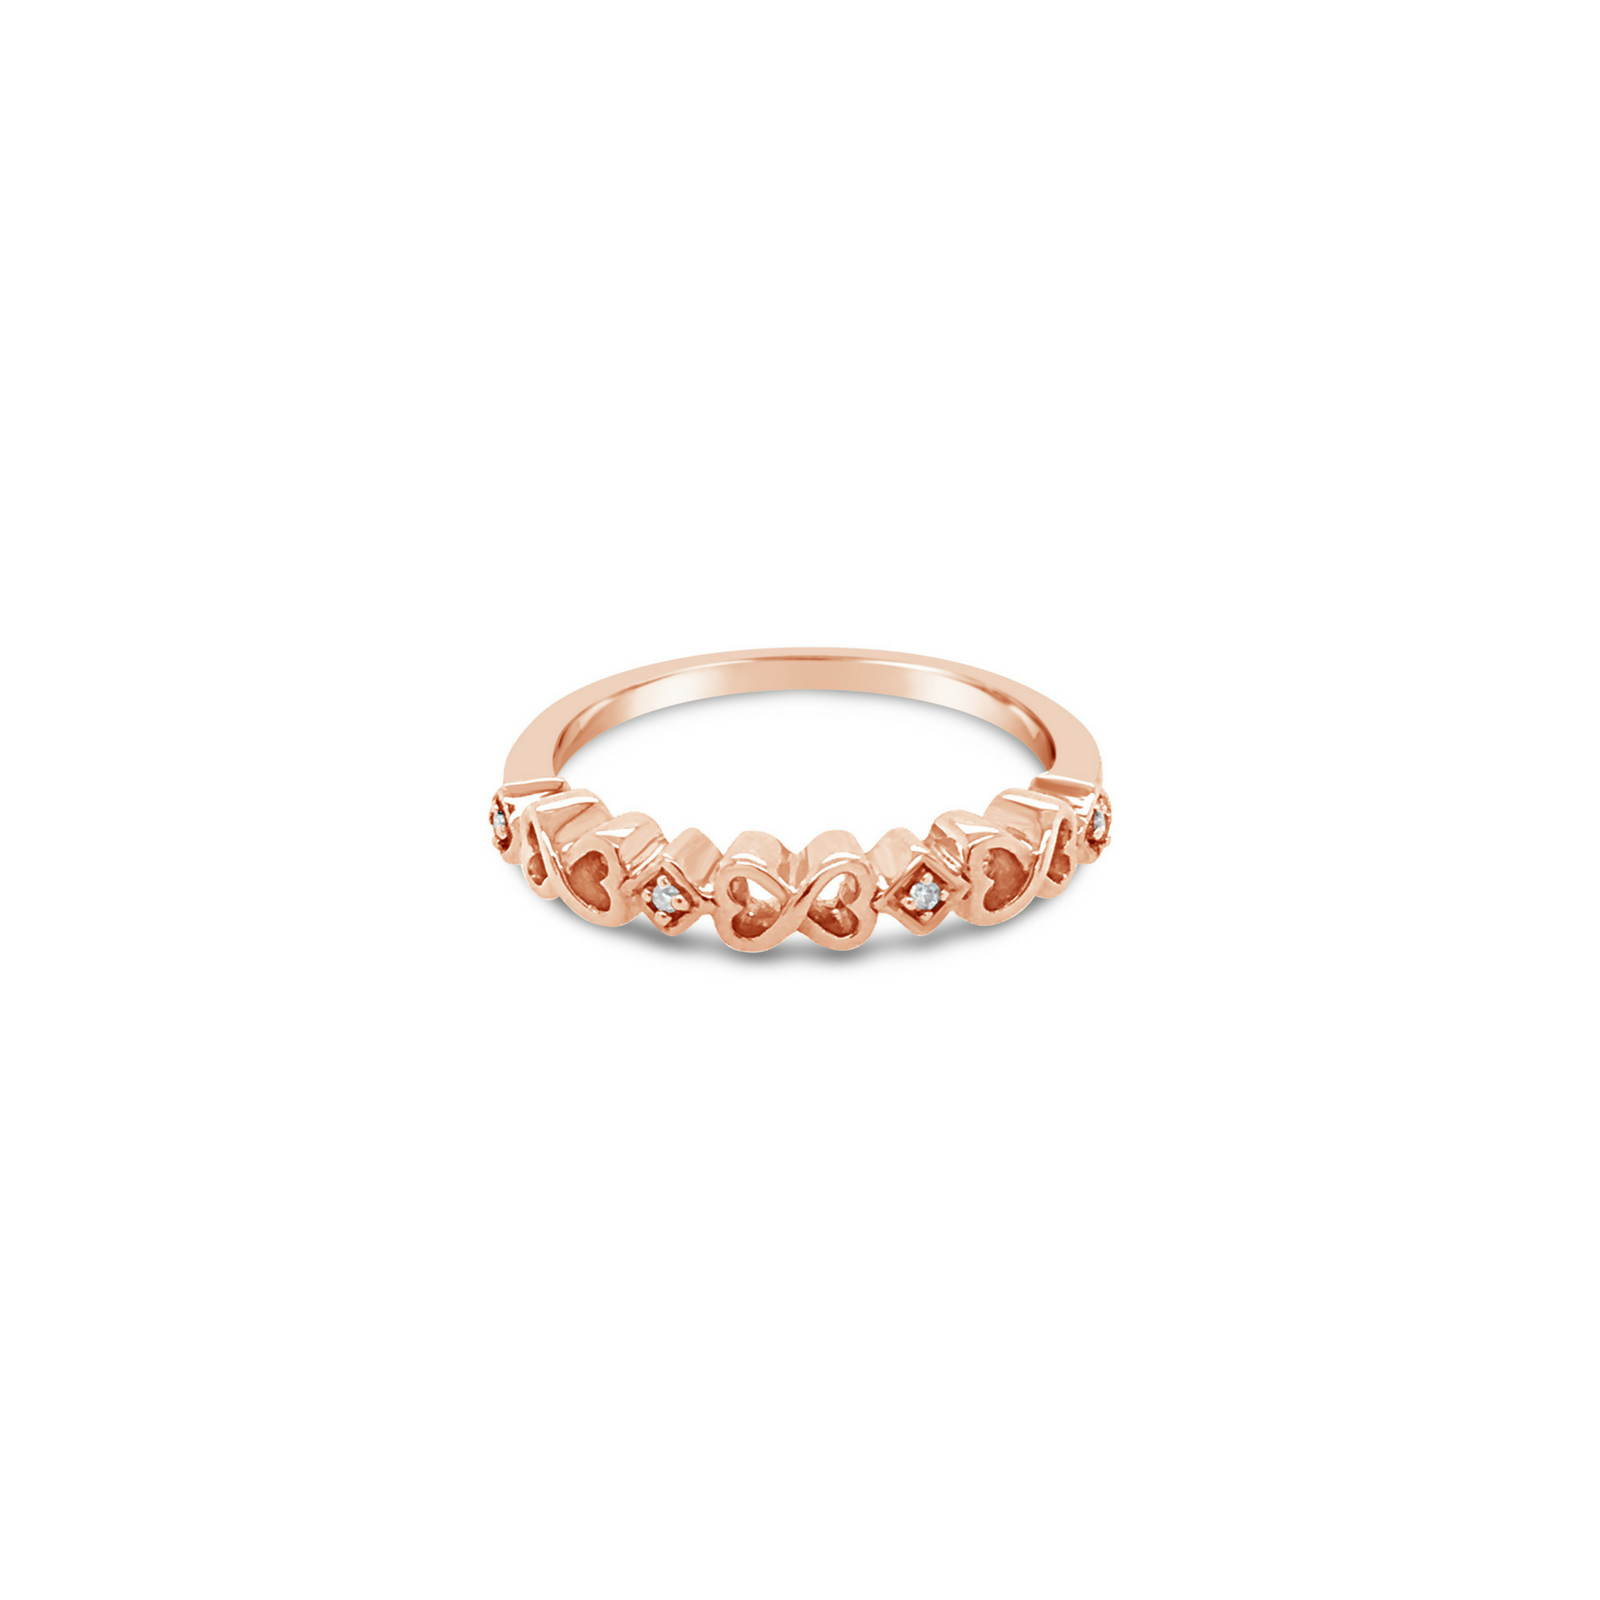 Infinity Heart Ring - $399